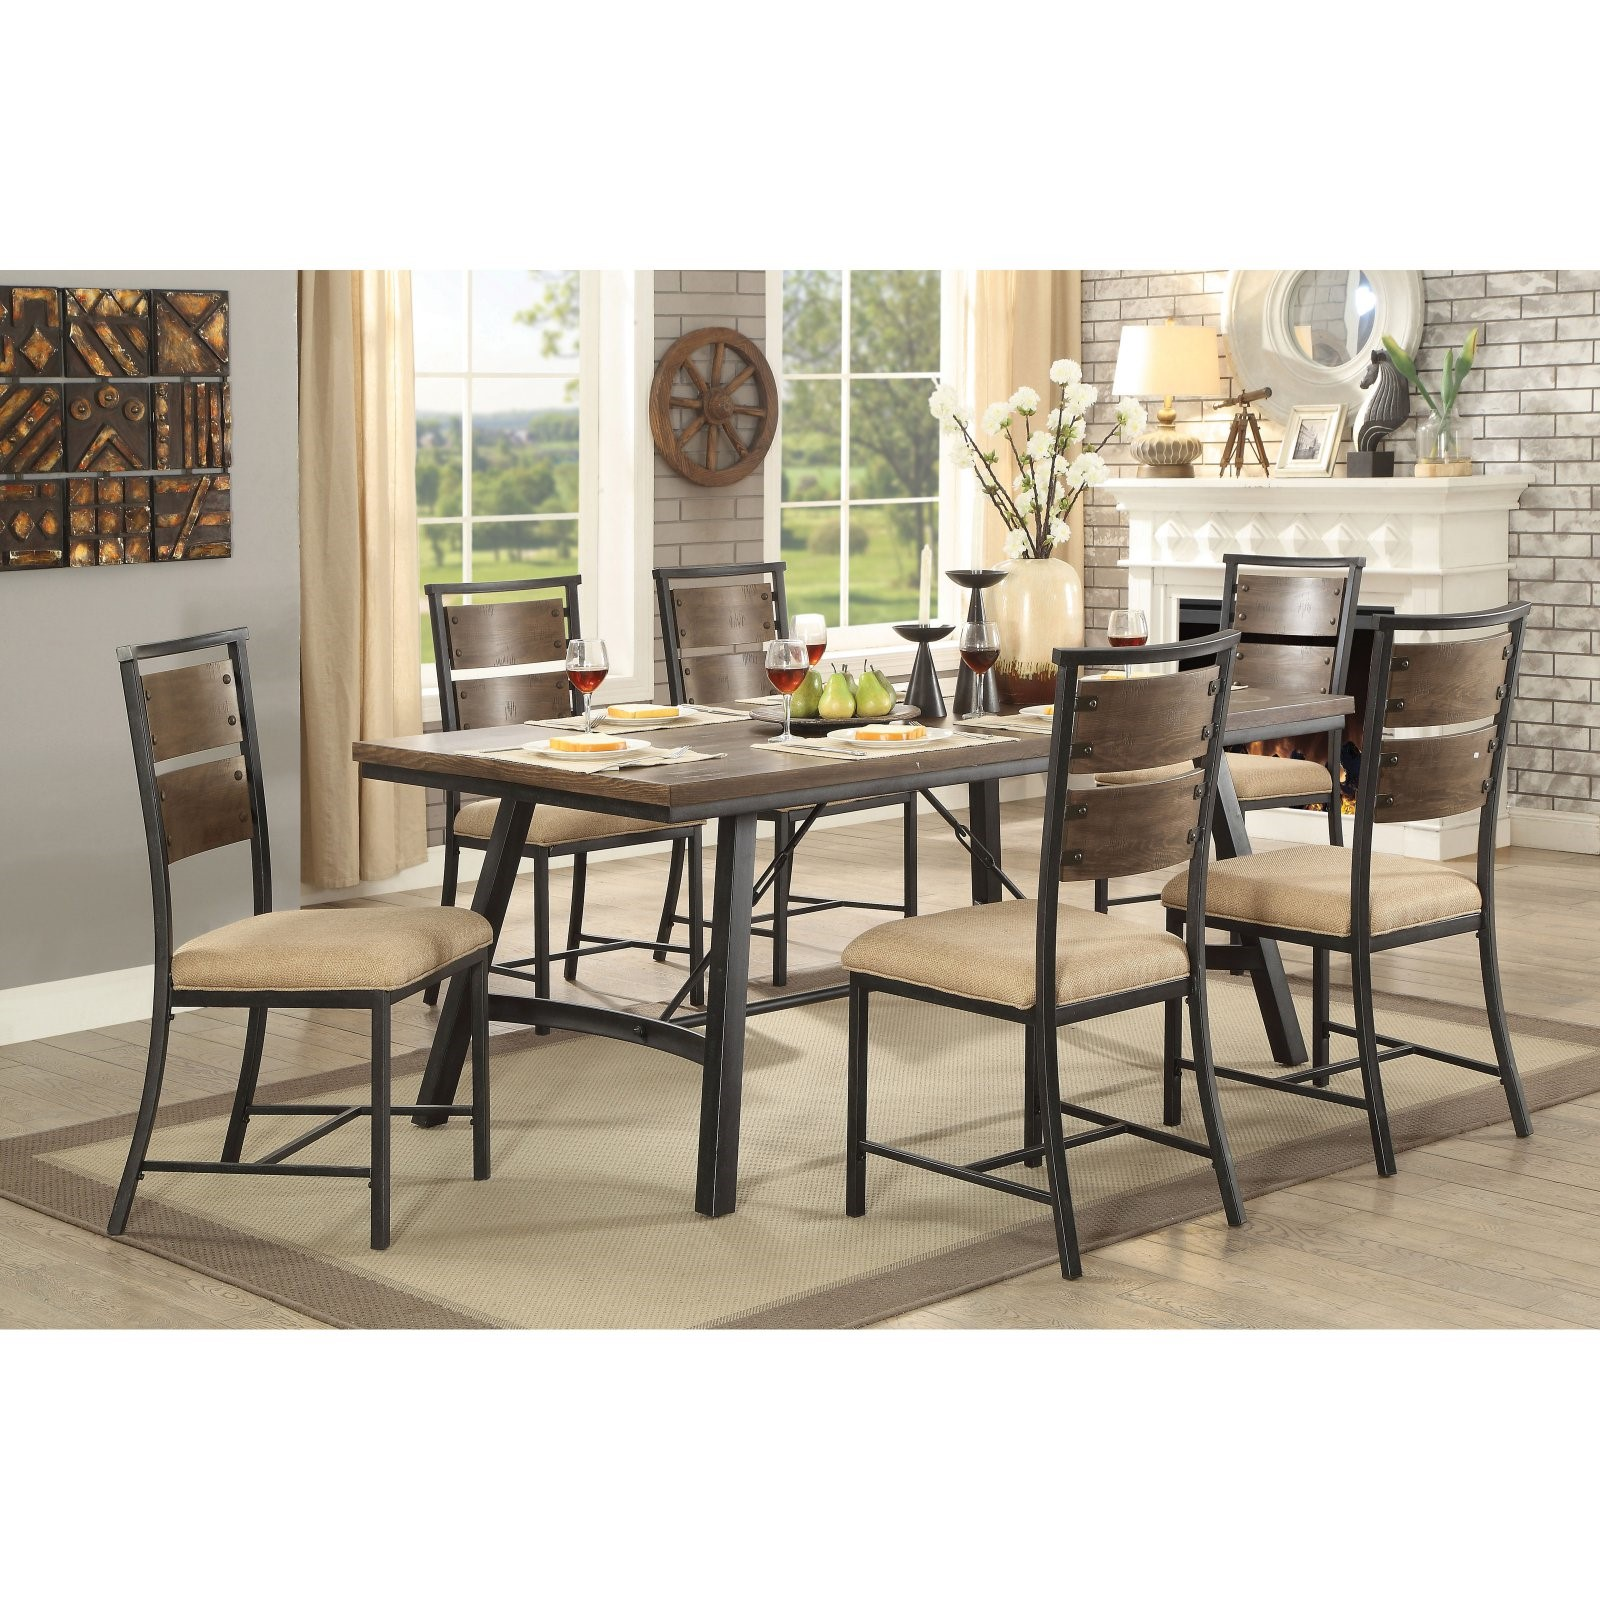 Furniture of America Greenstreet Industrial Dining Table